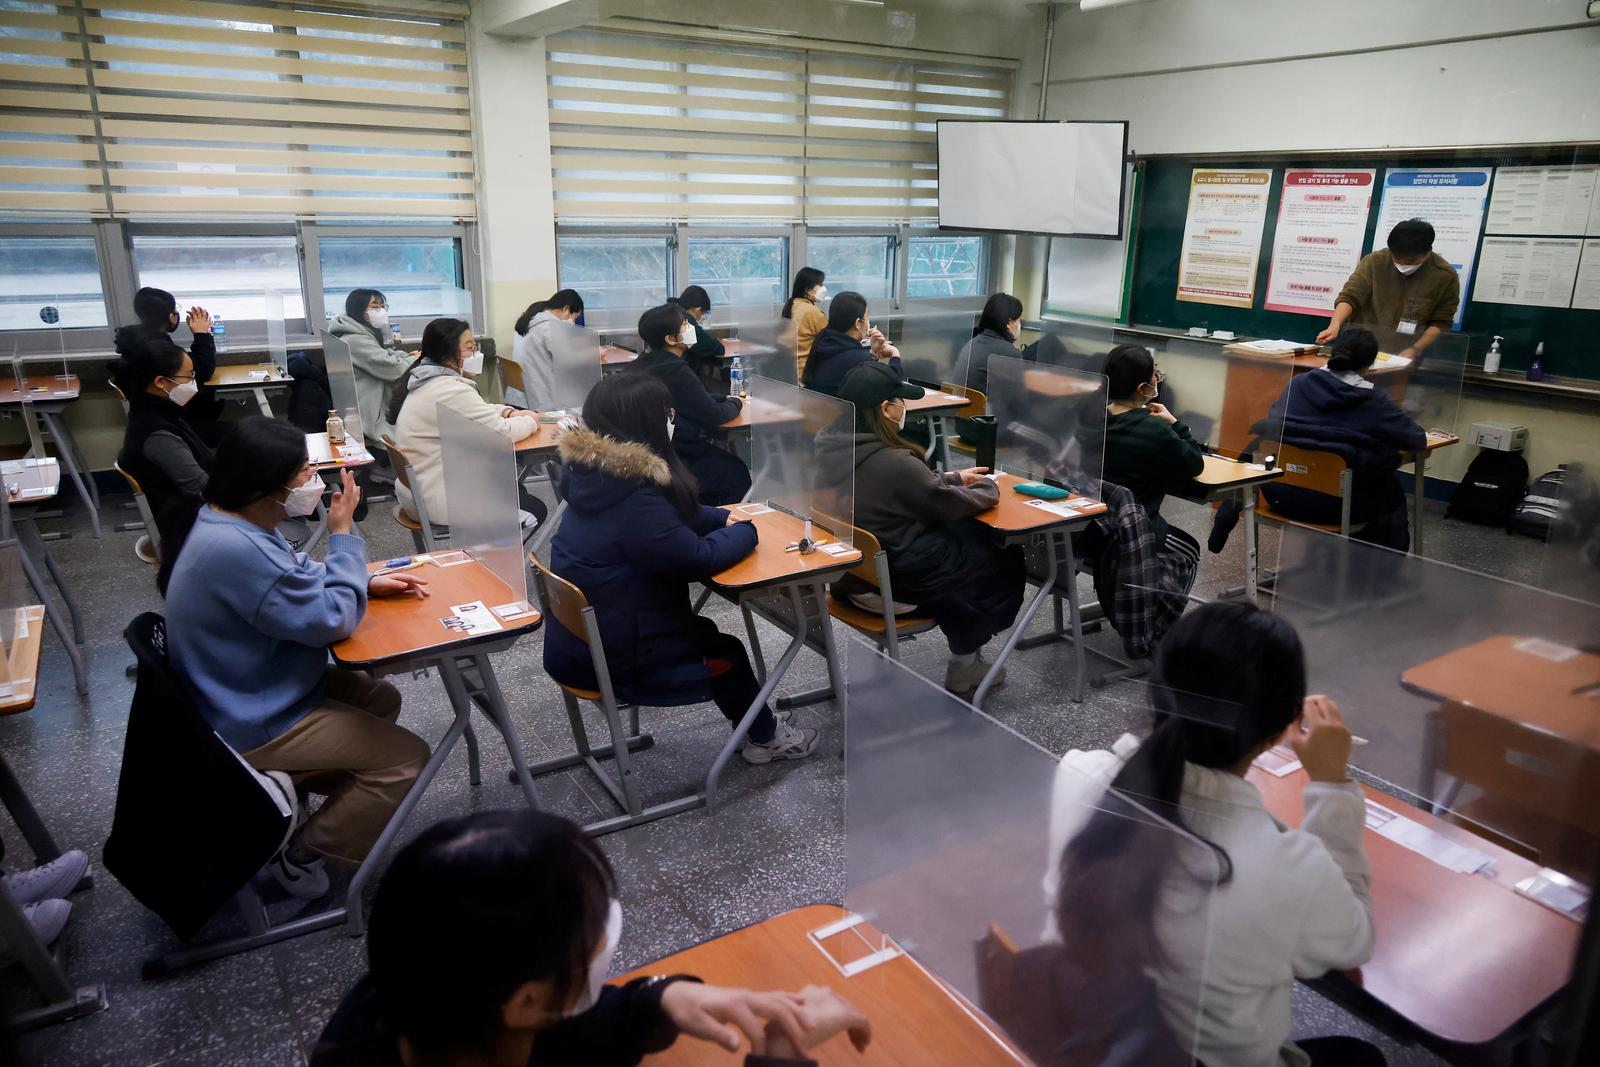 South Korea students sit college exam behind plastic barriers and in hospitals due to COVID-19